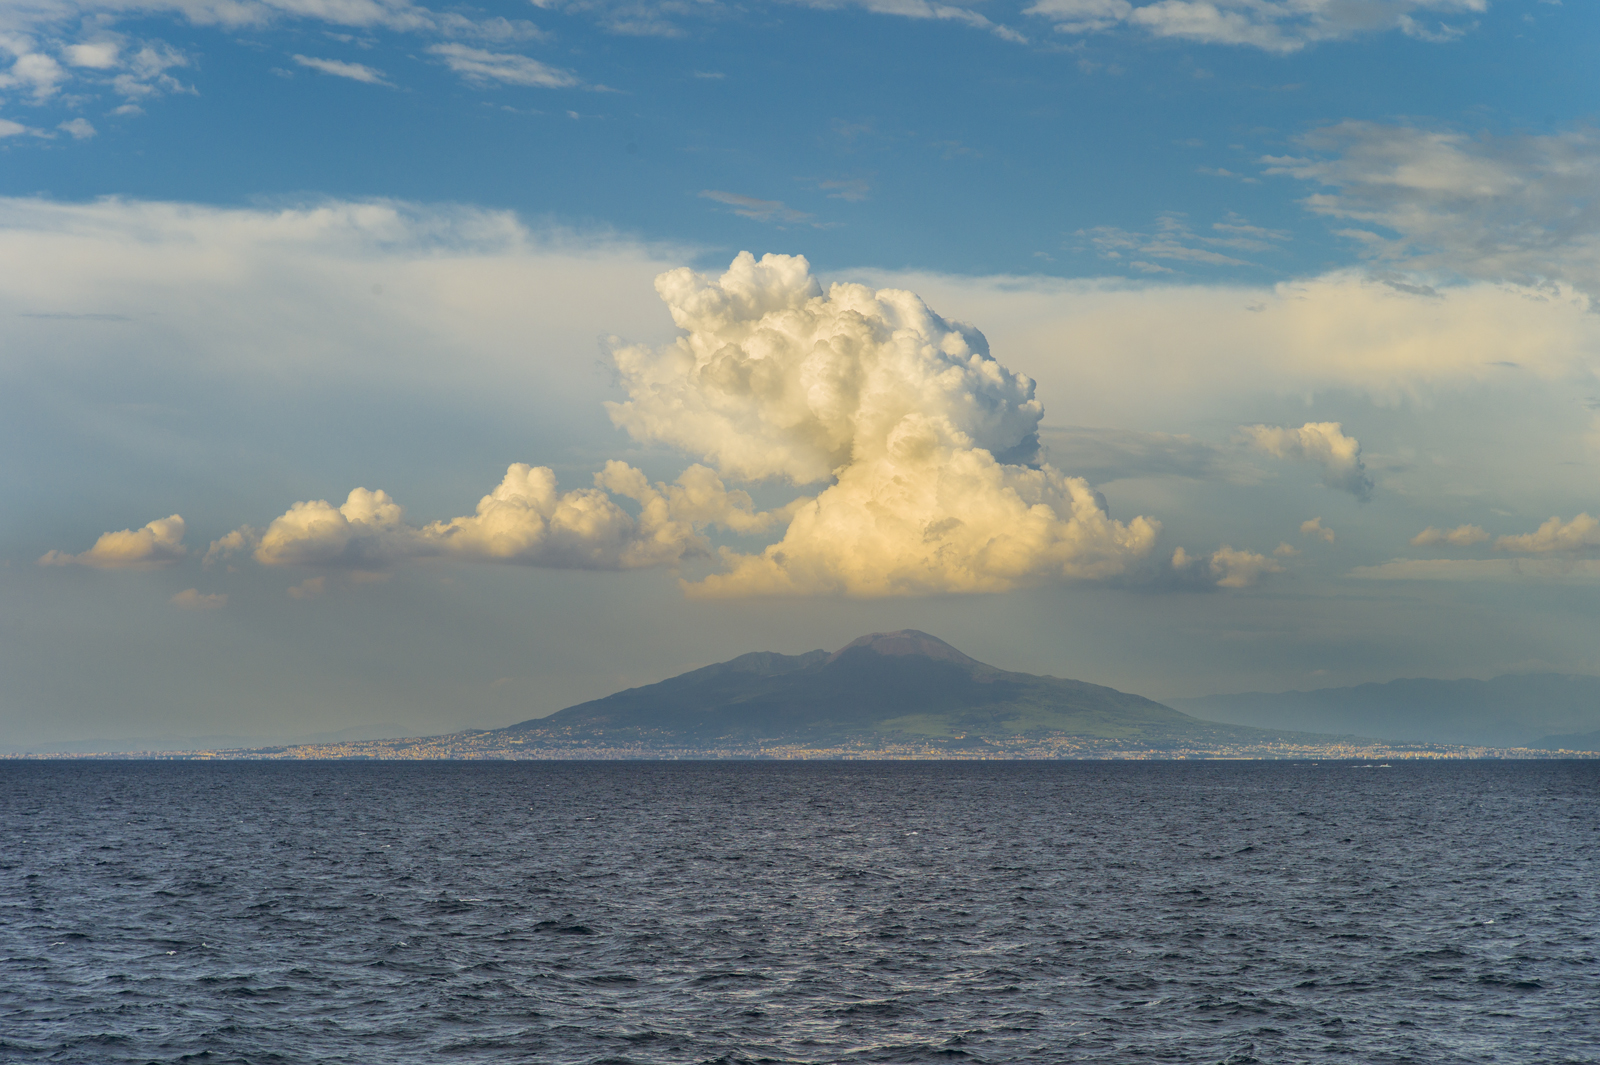 "Mount Vesuvius, Italy. August 2013. Archival Inkjet Print 22"" X 33"". Currently exhibited at Bedford Gallery in California as part of 'Sky: A National Juried Exhibition' (March 9–May 25)."